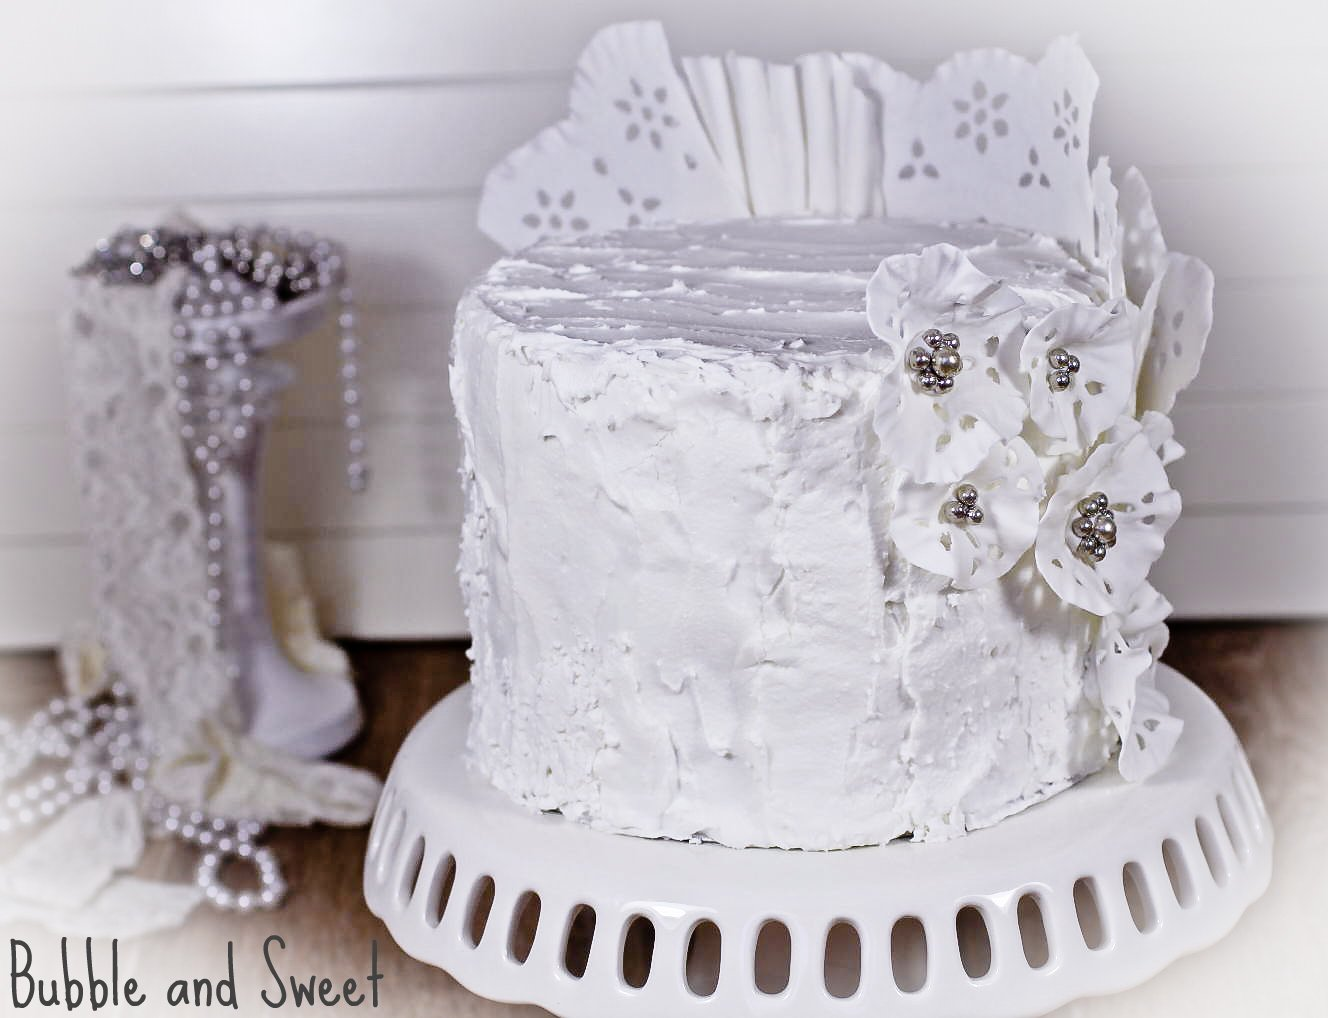 Bubble and Sweet Sweet Memories royal icing and lace cake